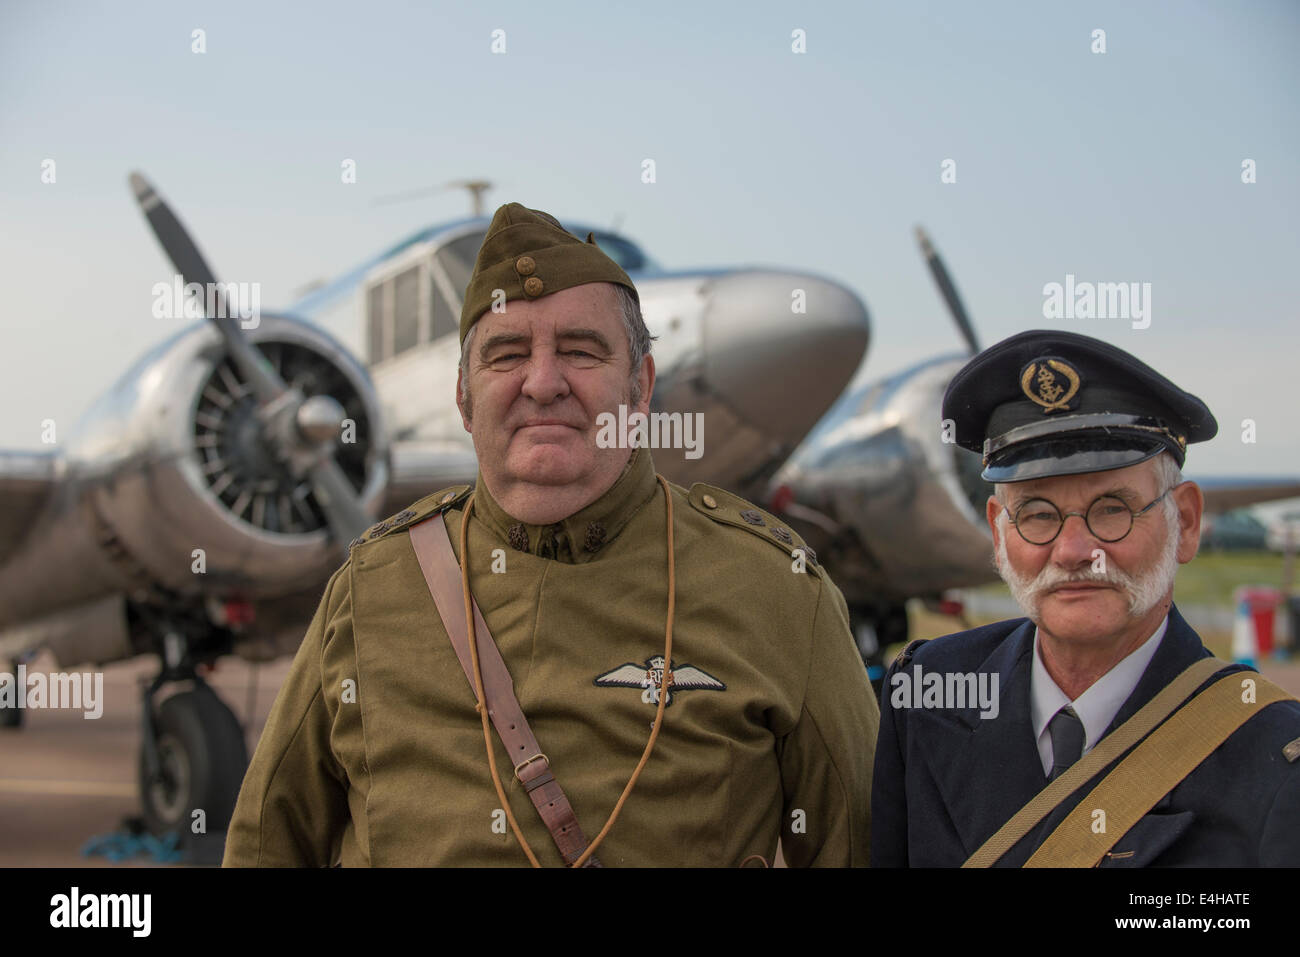 RAF Fairford, Gloucestershire UK. 11th July 2014. Early 20th century military uniforms at RIAT. Credit:  Malcolm Stock Photo